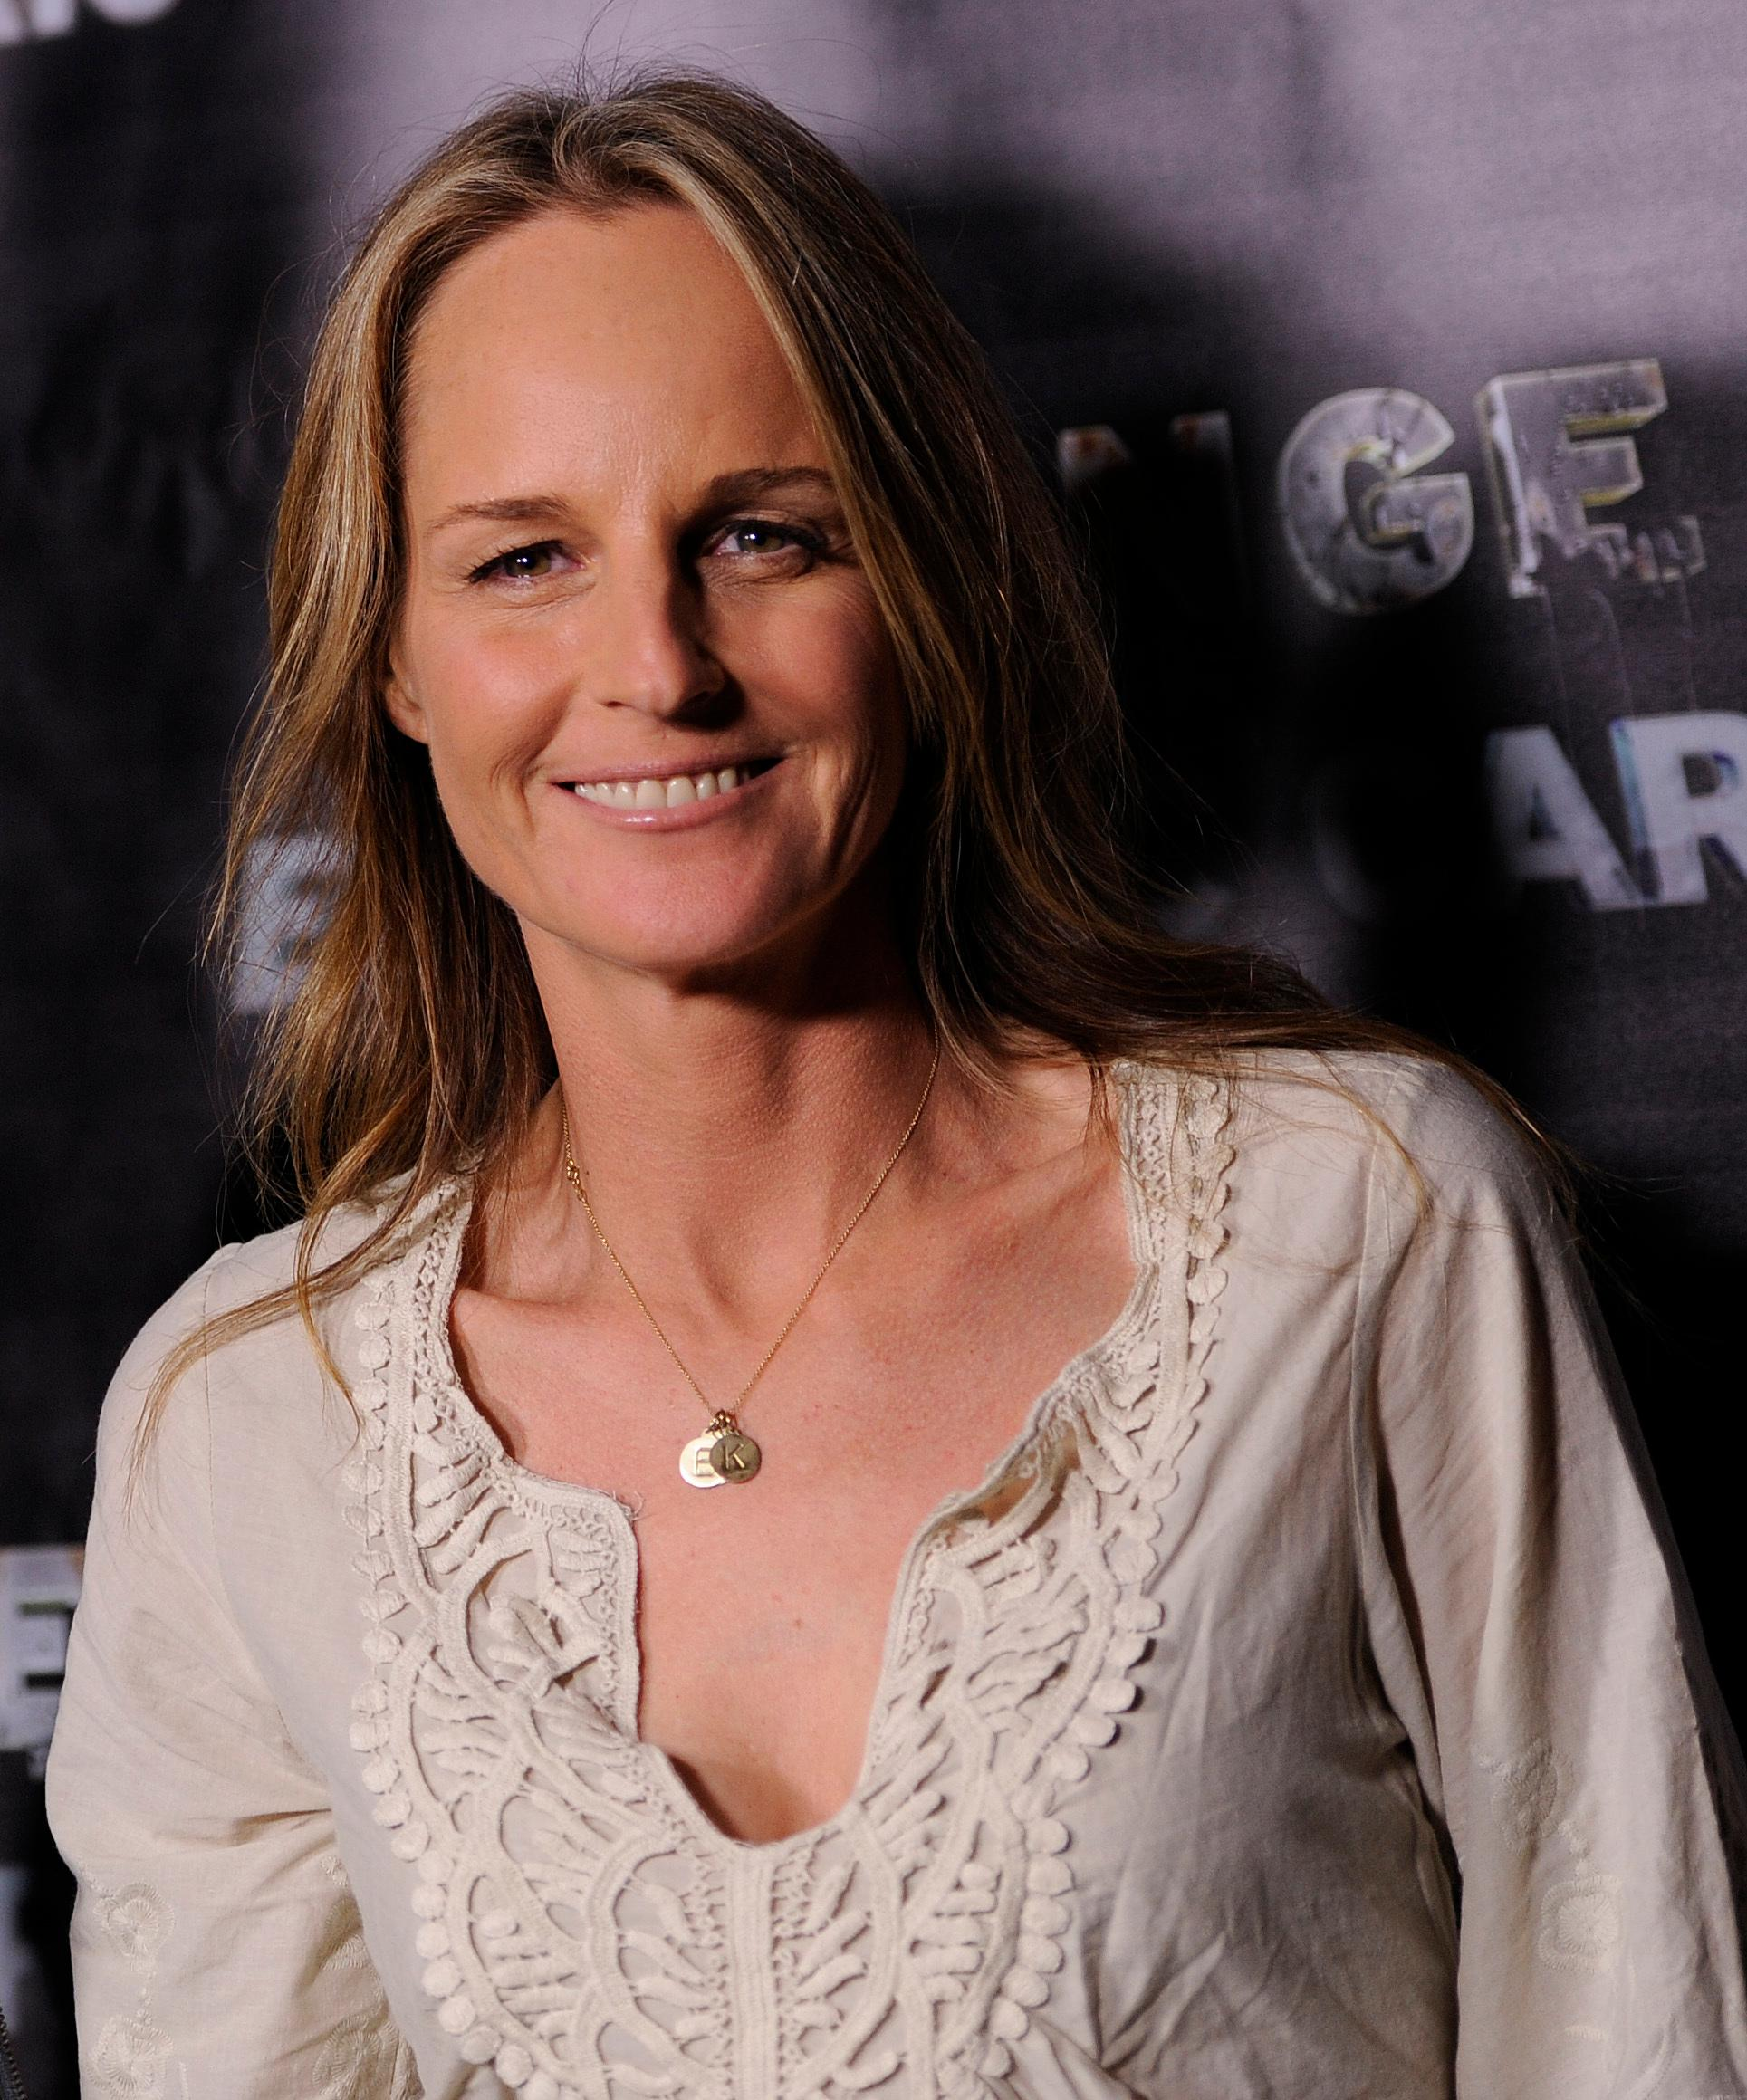 "FILE - In this Oct. 21, 2011 file photo, actress Helen Hunt poses at the premiere of the documentary film ""Revenge of the Electric Car,"" in Los Angeles. Egyptian activists have condemned Hunt for her participation in a government-organized youth conference that they say is whitewashing authorities' appalling human rights record and suppression of free speech. The open letter by Mona Seif and other well-known human rights advocates gained nearly 300 signatures by the afternoon of Tuesday, Nov. 7, 2017. (AP Photo/Chris Pizzello, File)"